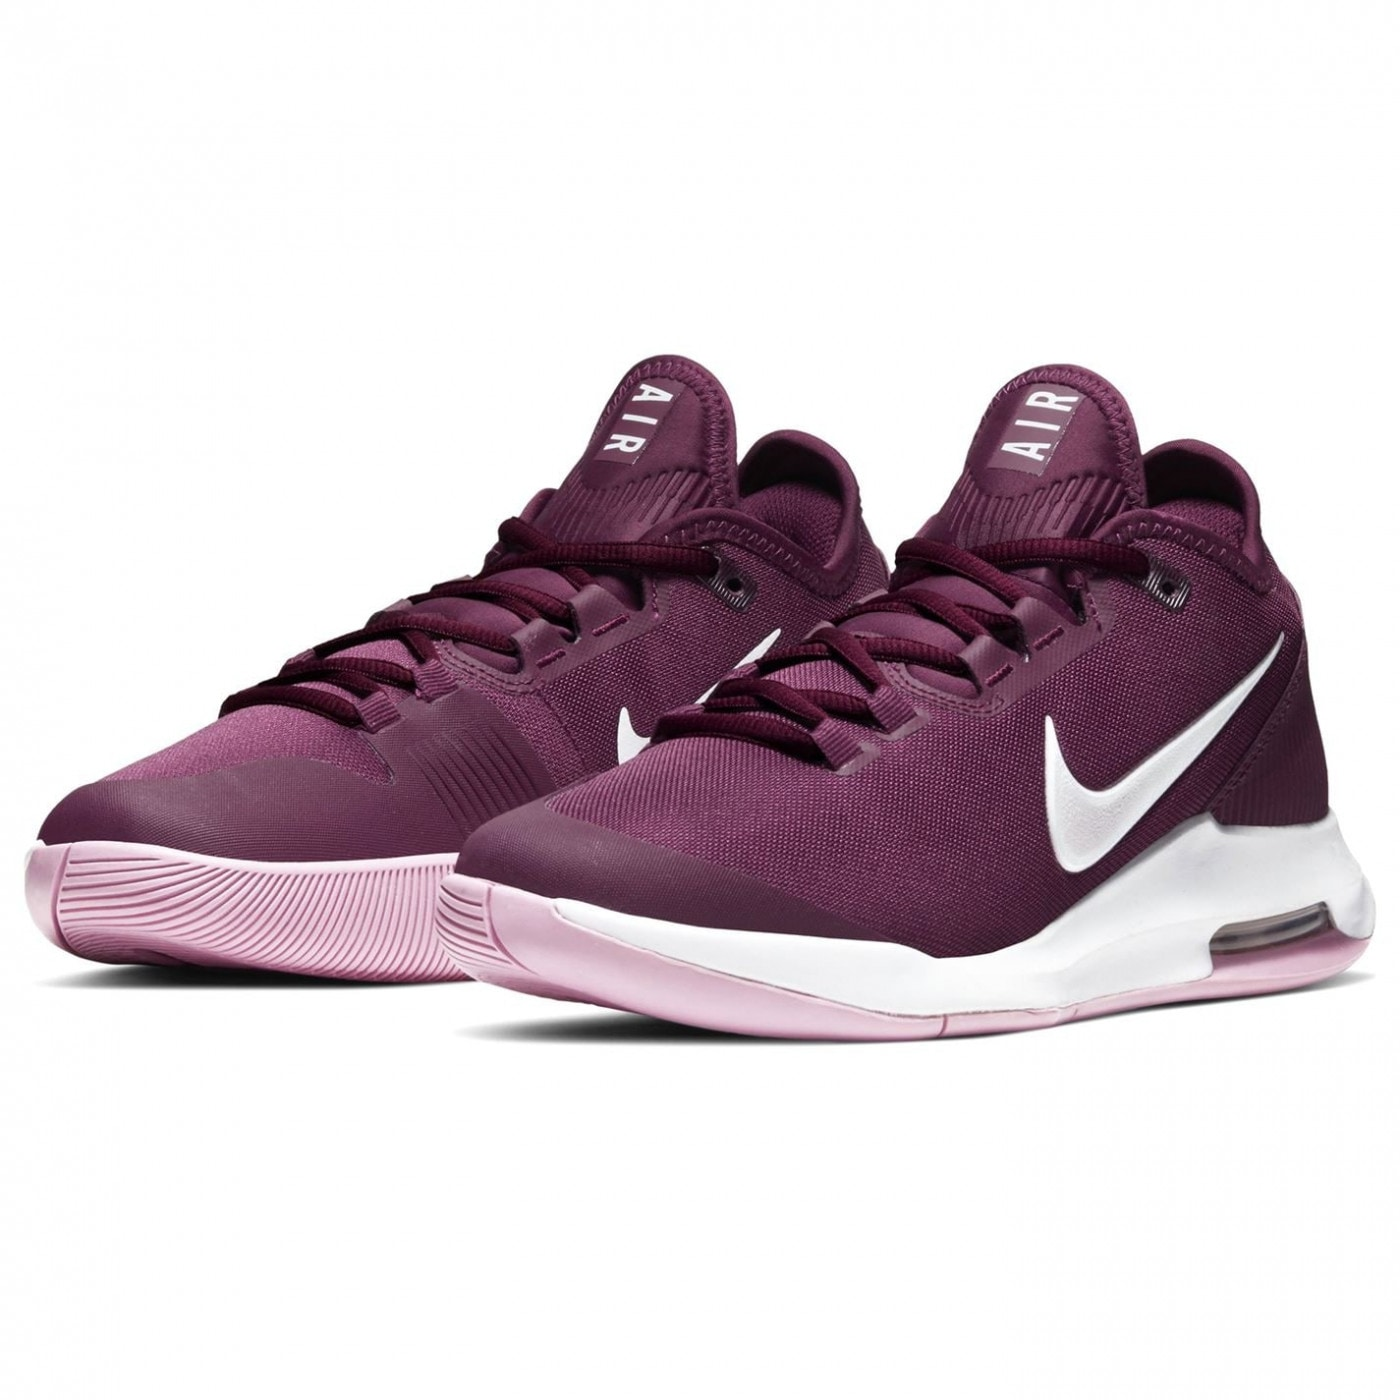 Women's trainers Nike Air Max Wildcard